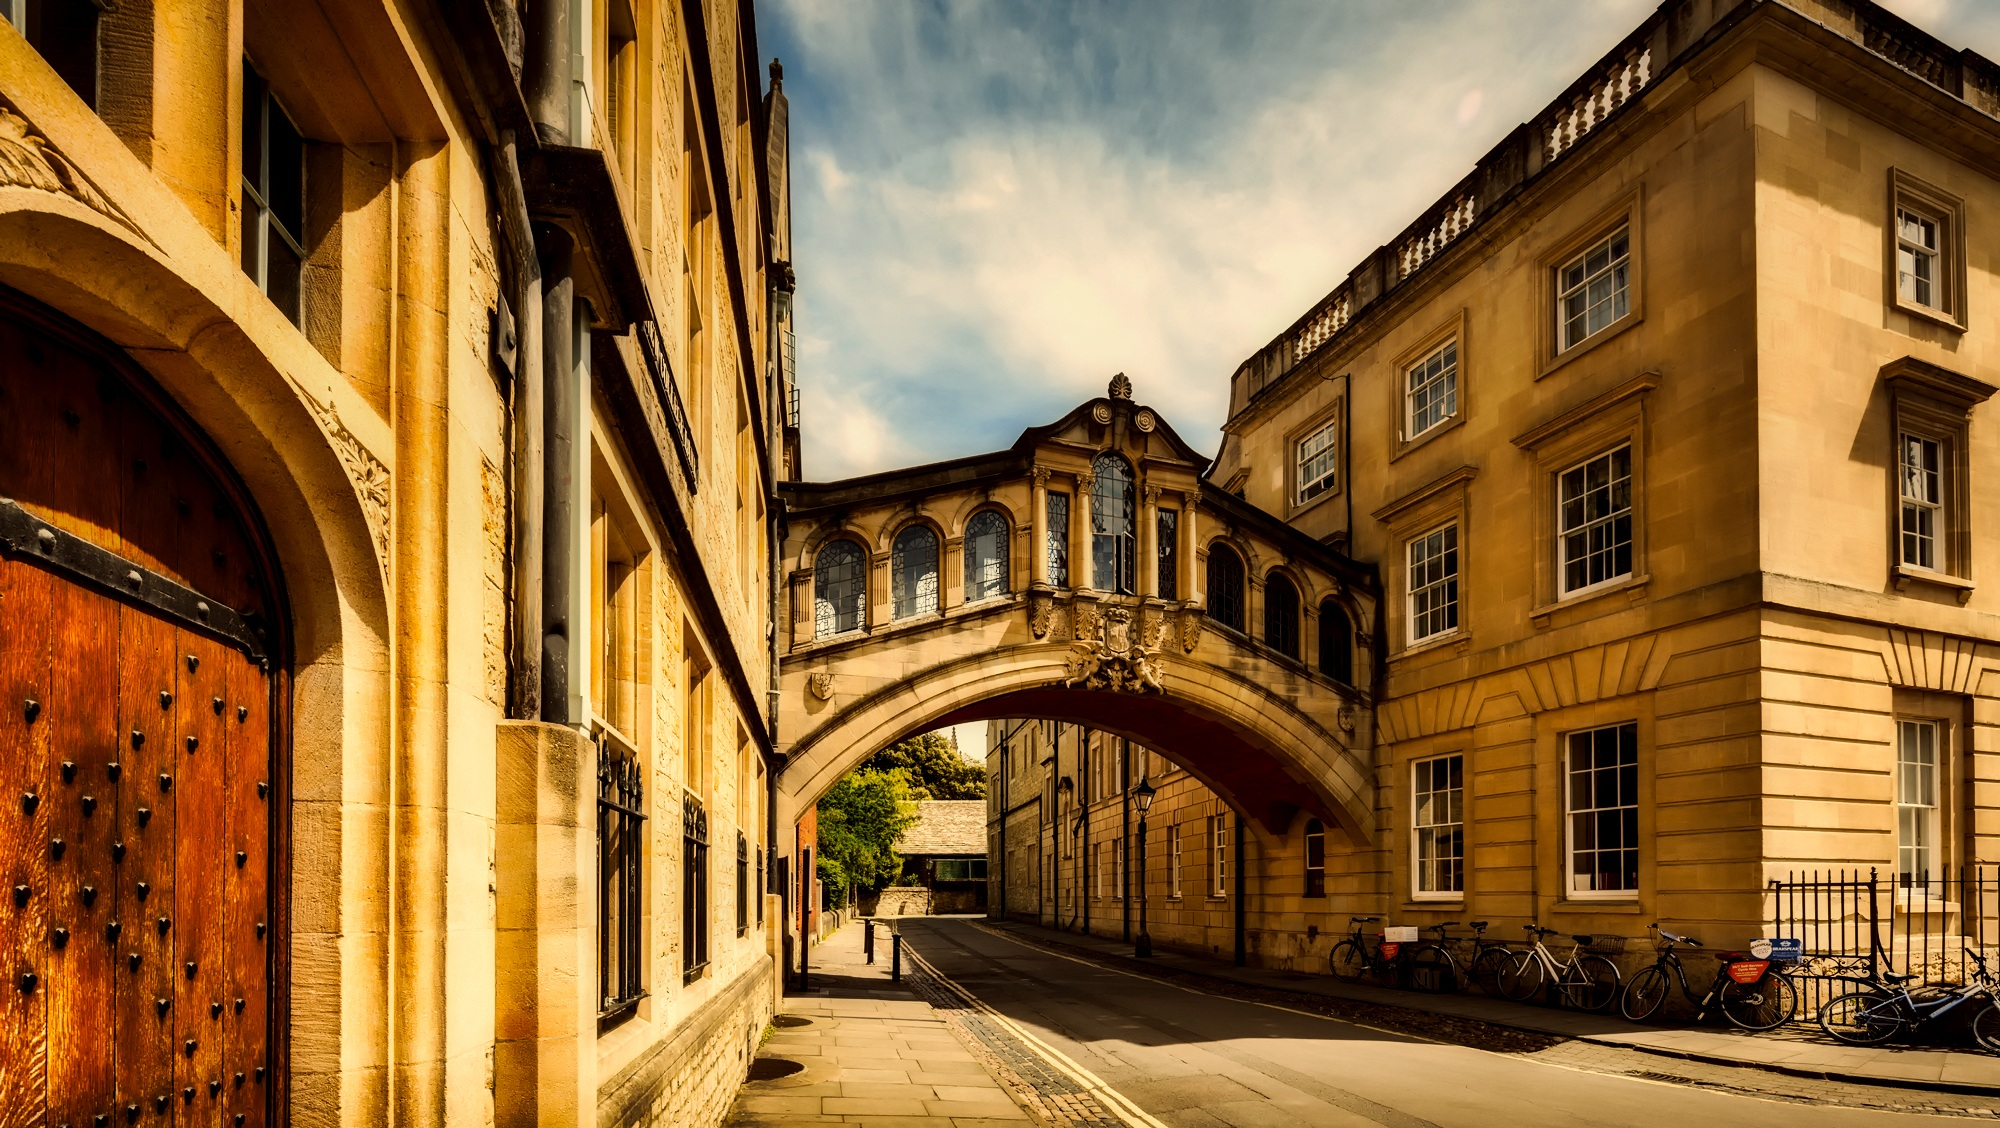 Hertford College Bridge